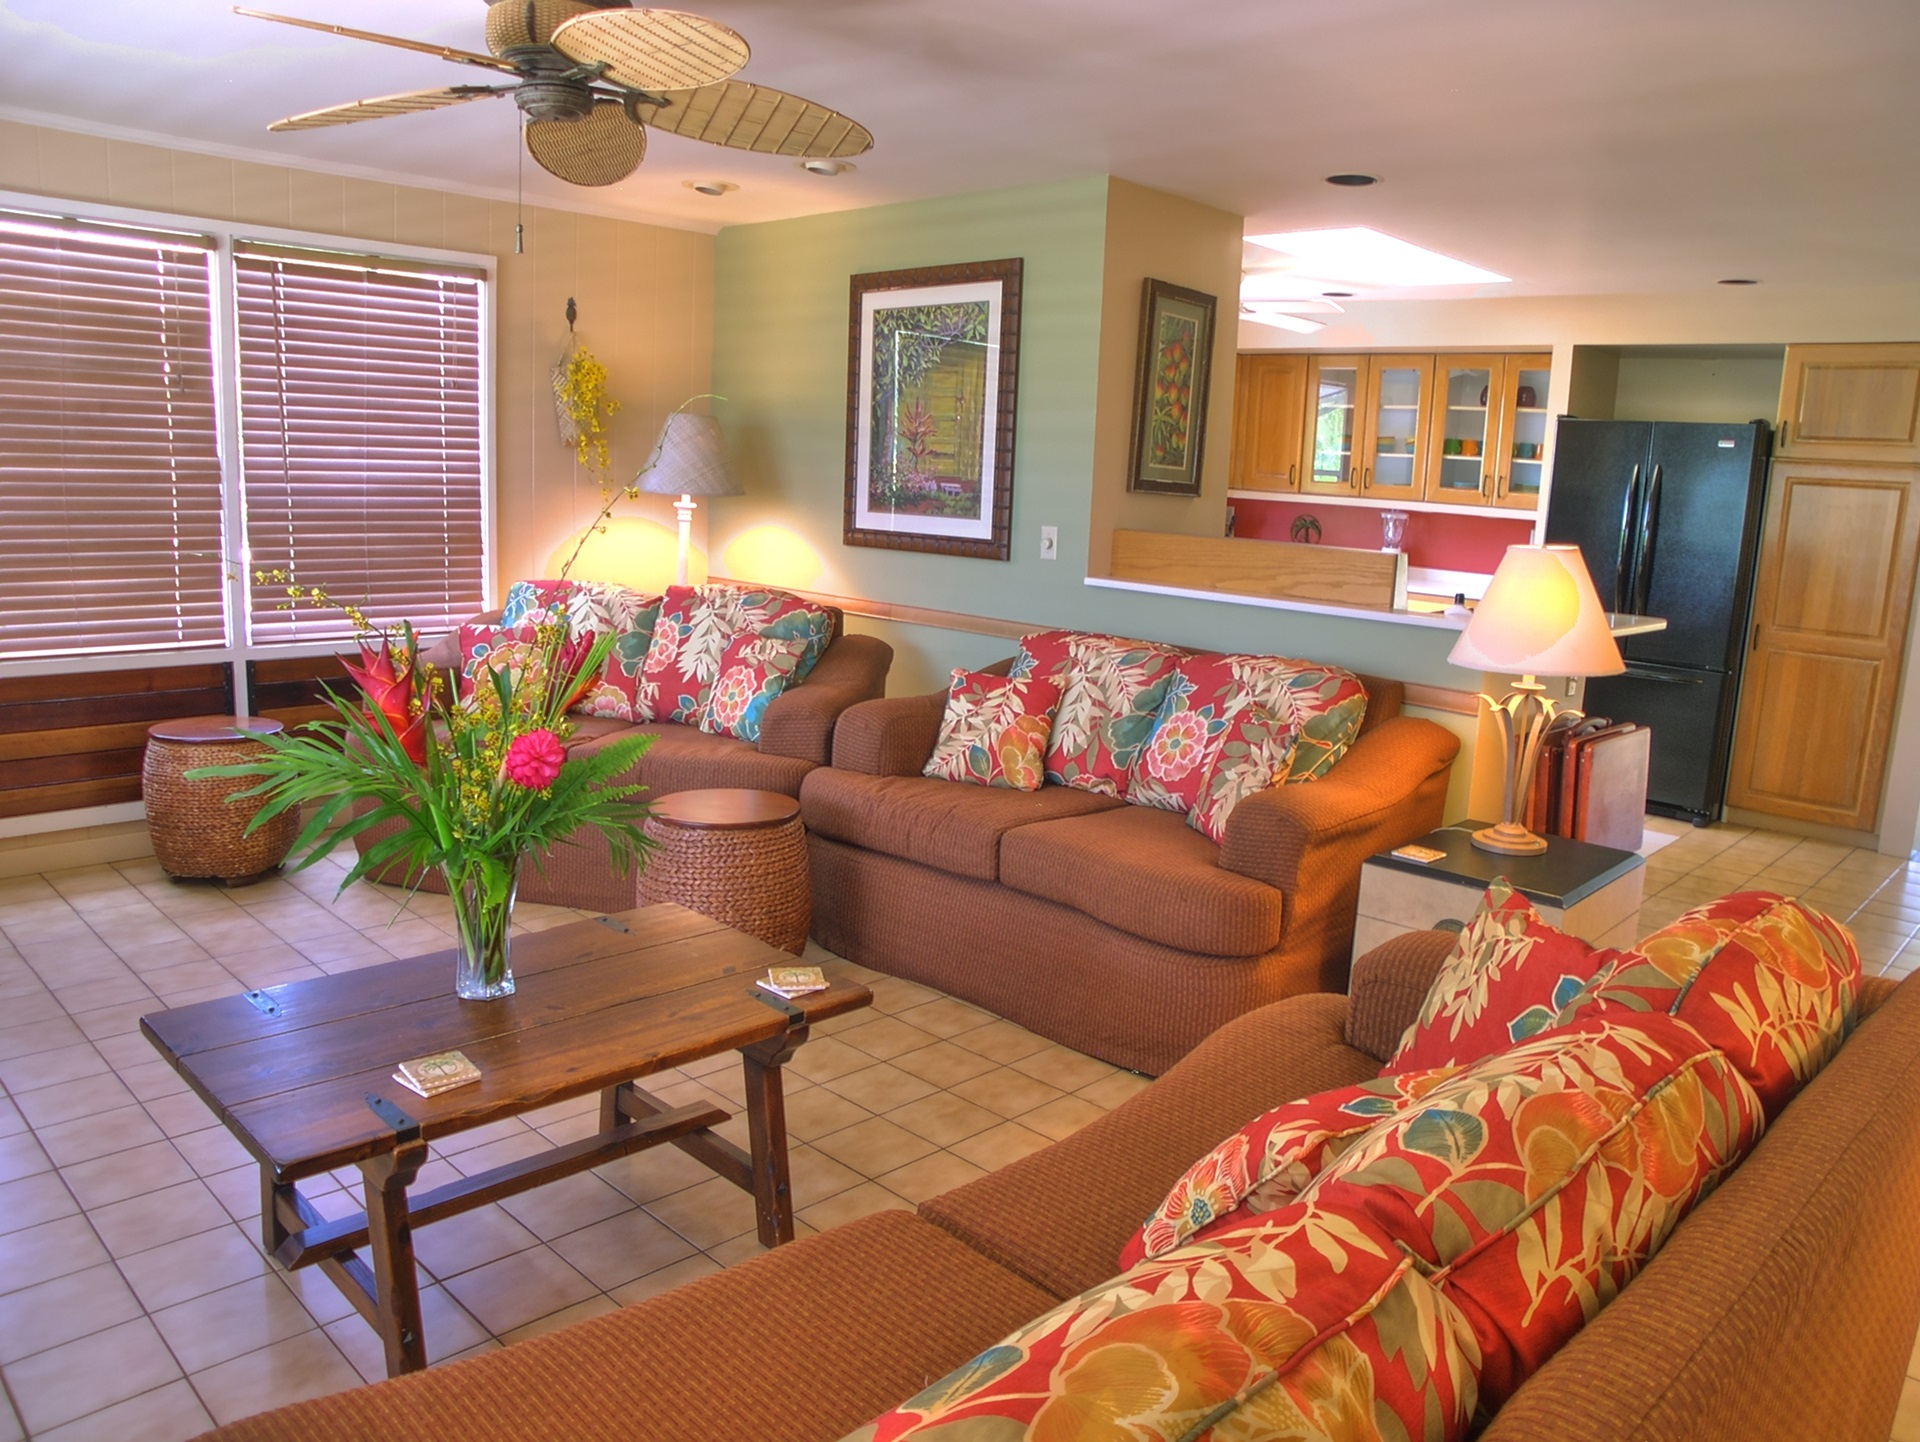 Tiled floors and an open floor plan blend the living, kitchen and dining areas.